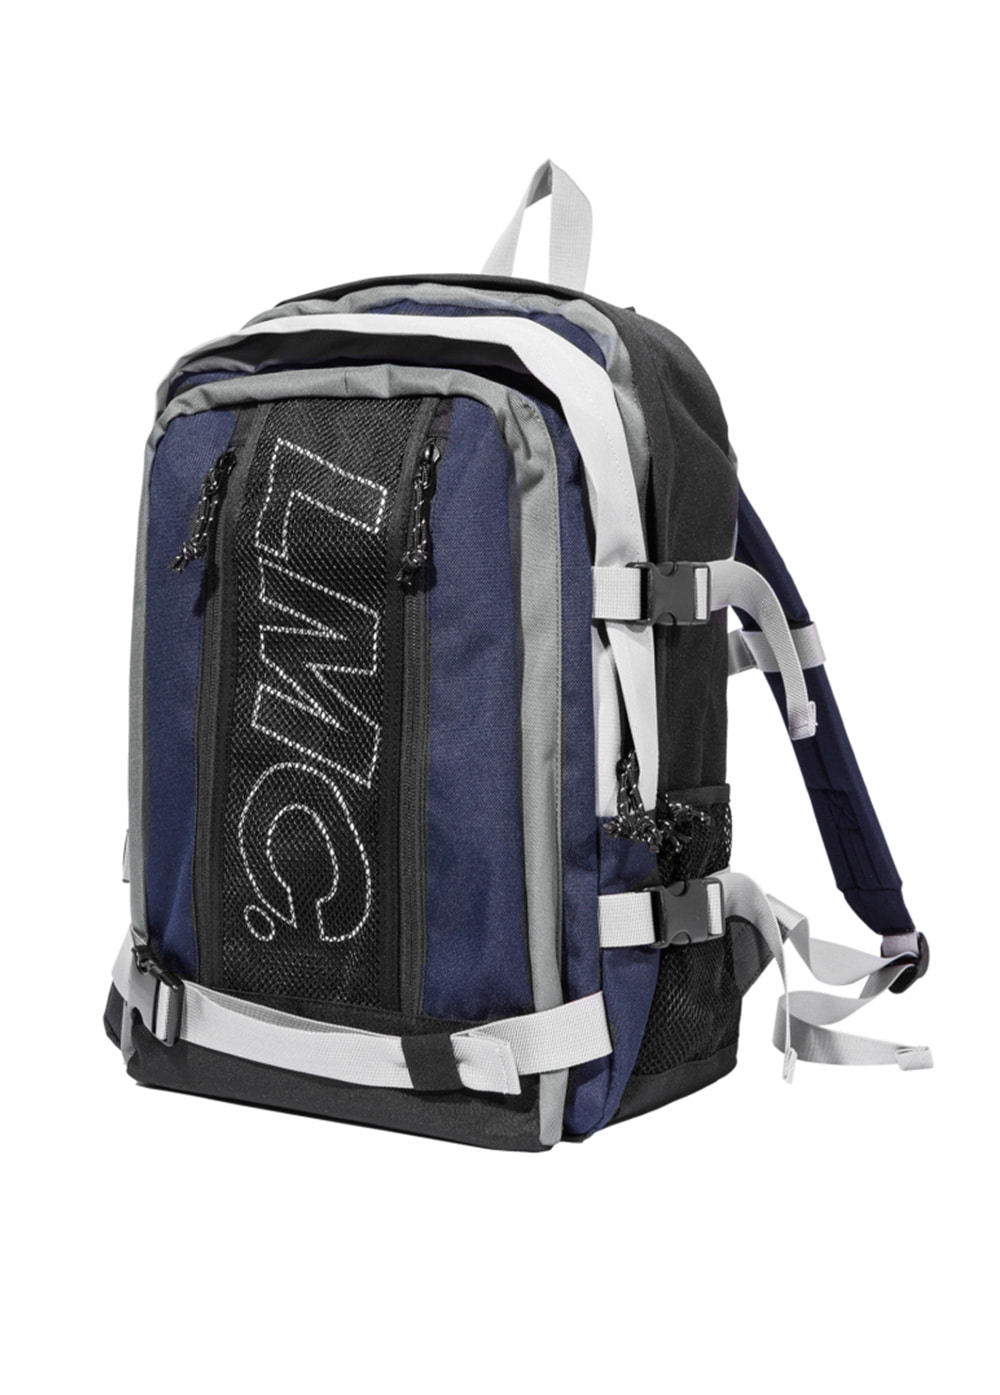 LMC UTILITY BACKPACK multi